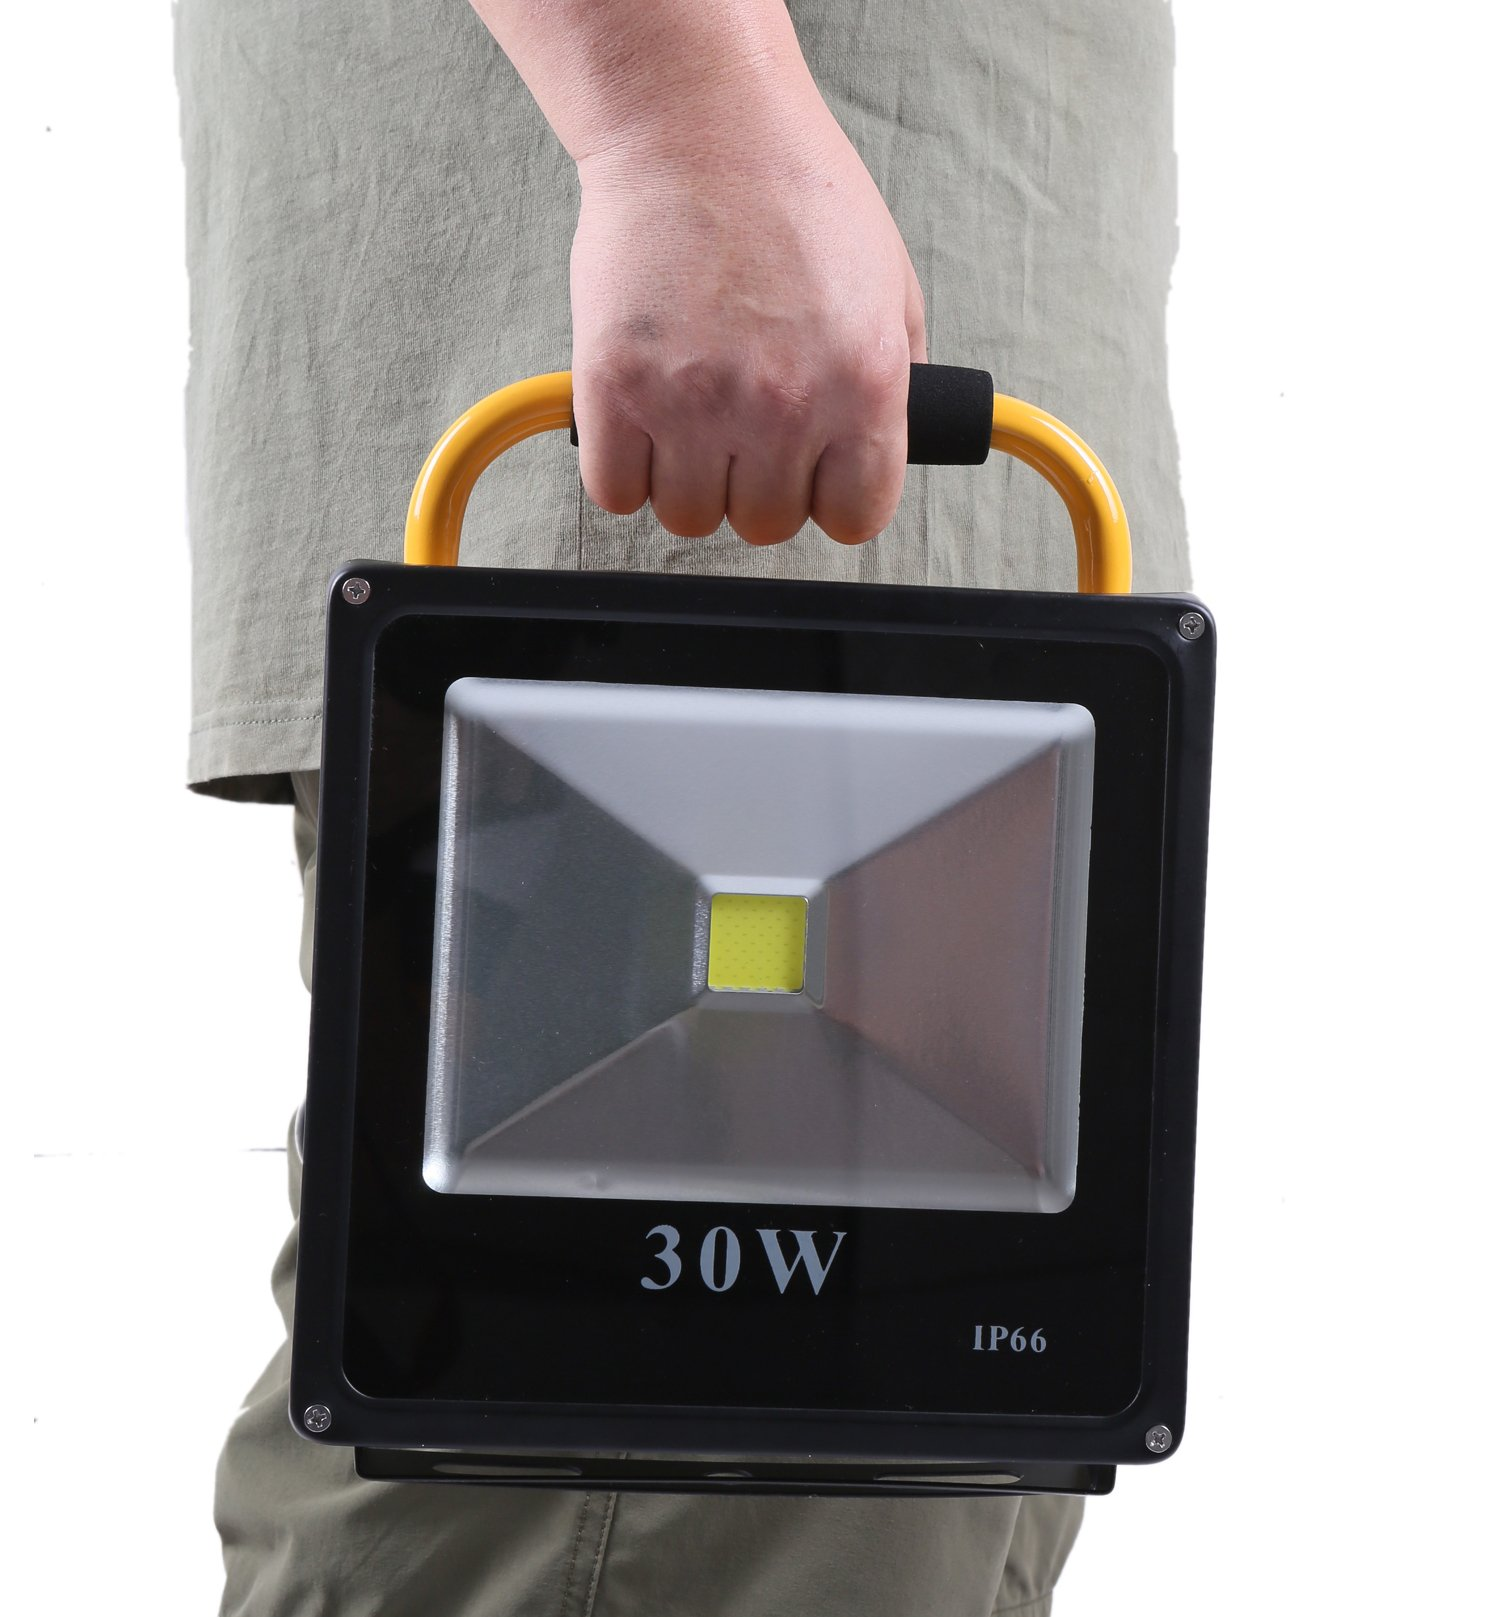 Starsea Portable Work Lights 30W, Rechargeable Led Flood Light with 18650 Lithium Batteries IP66 Waterproof, Rechargeable Led Spotlight, Work Light, Adapter Included by Starsea Shop (Image #1)